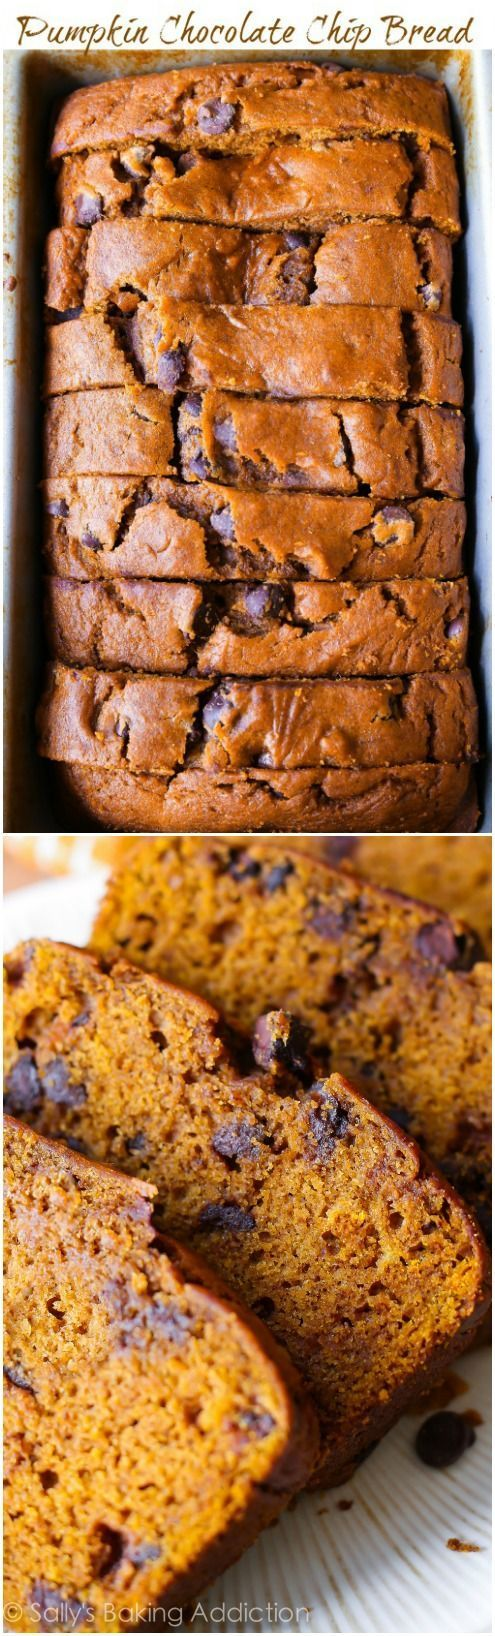 My favorite recipe for pumpkin bread! The flavor is outstanding and it's so moist!